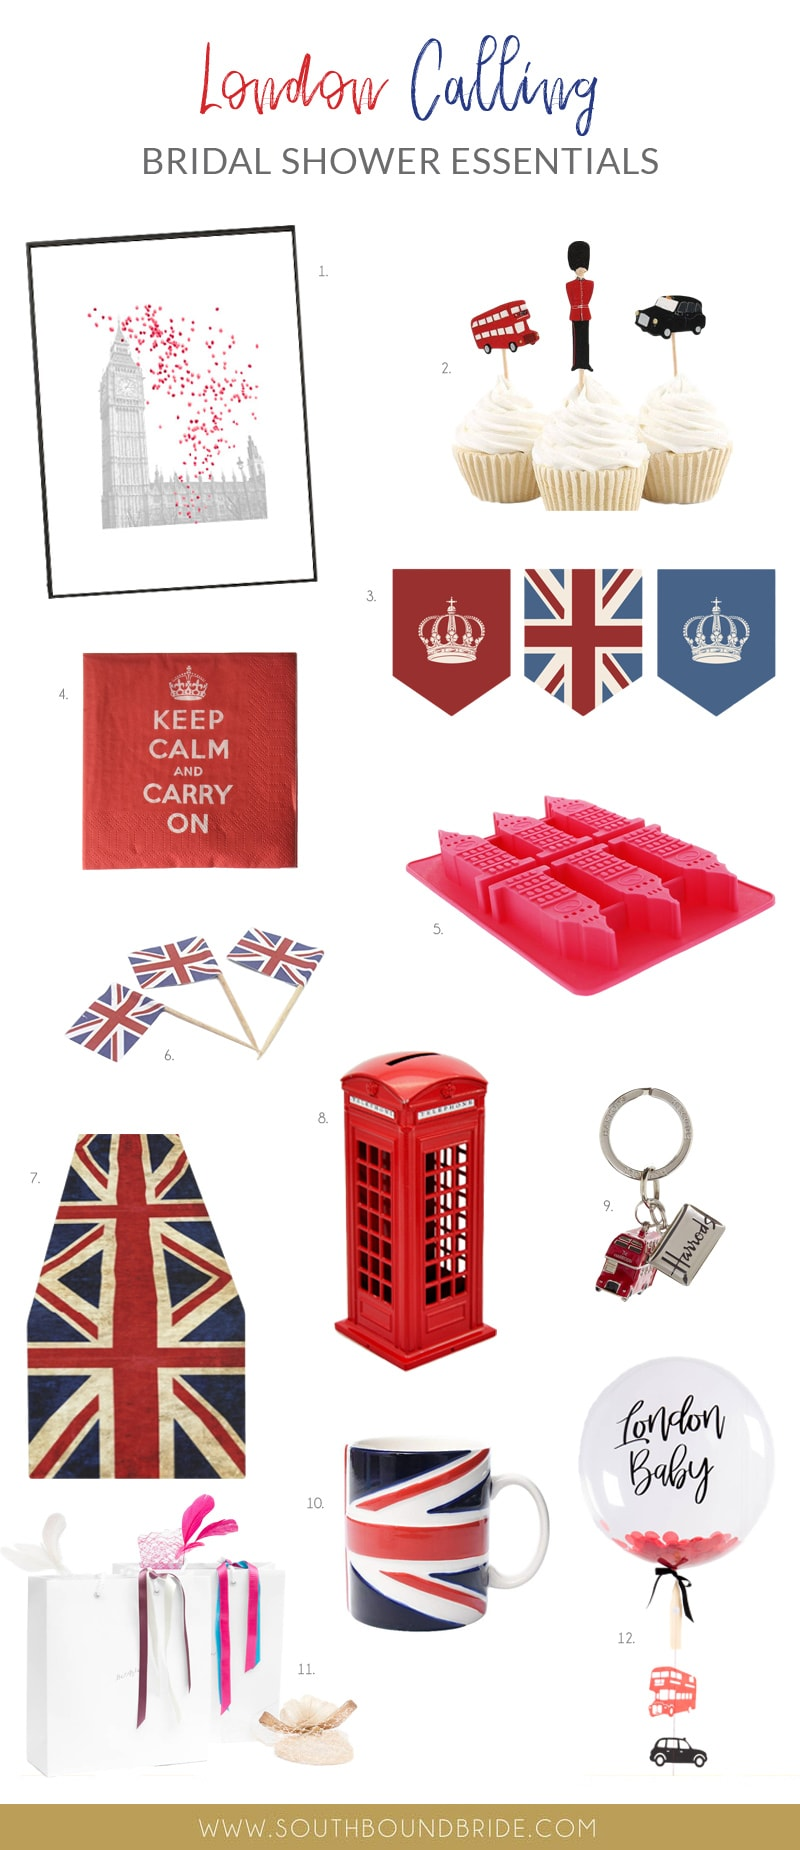 london union jack british royal wedding themed bridal shower essentials